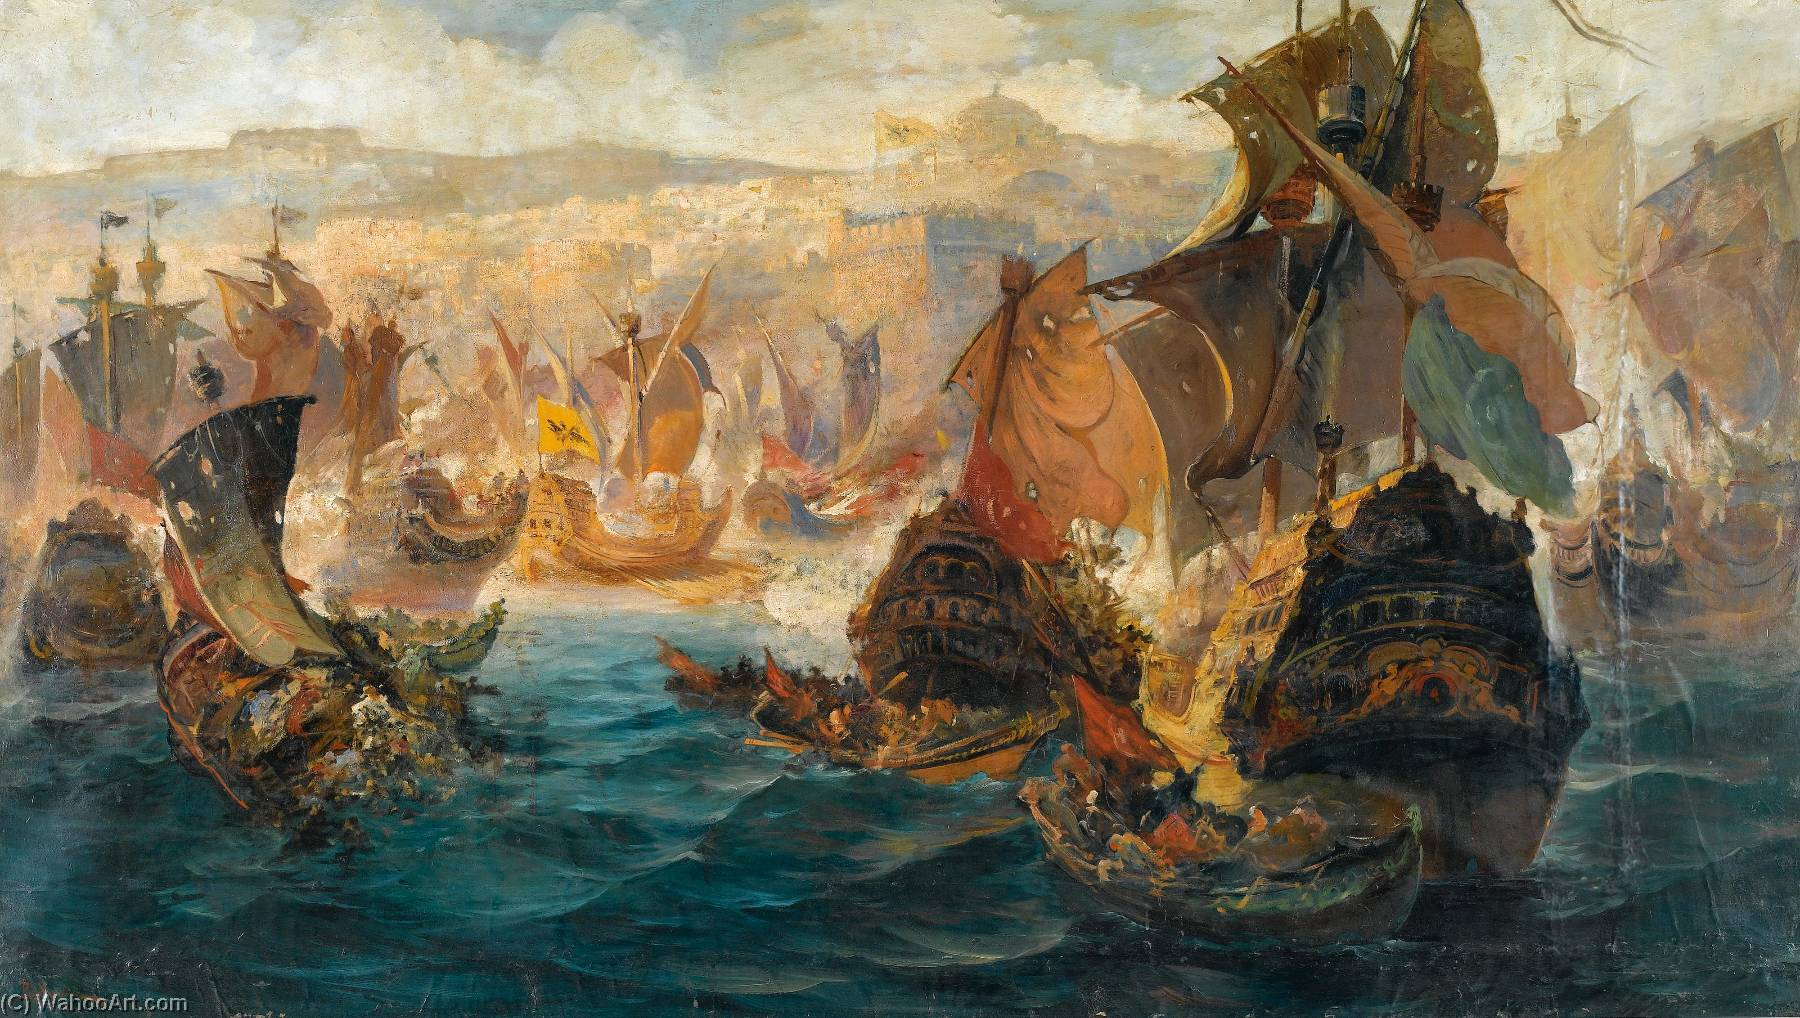 Wikioo.org - The Encyclopedia of Fine Arts - Painting, Artwork by Vasilios Chatzis - The Crusader invasion of Constantinople